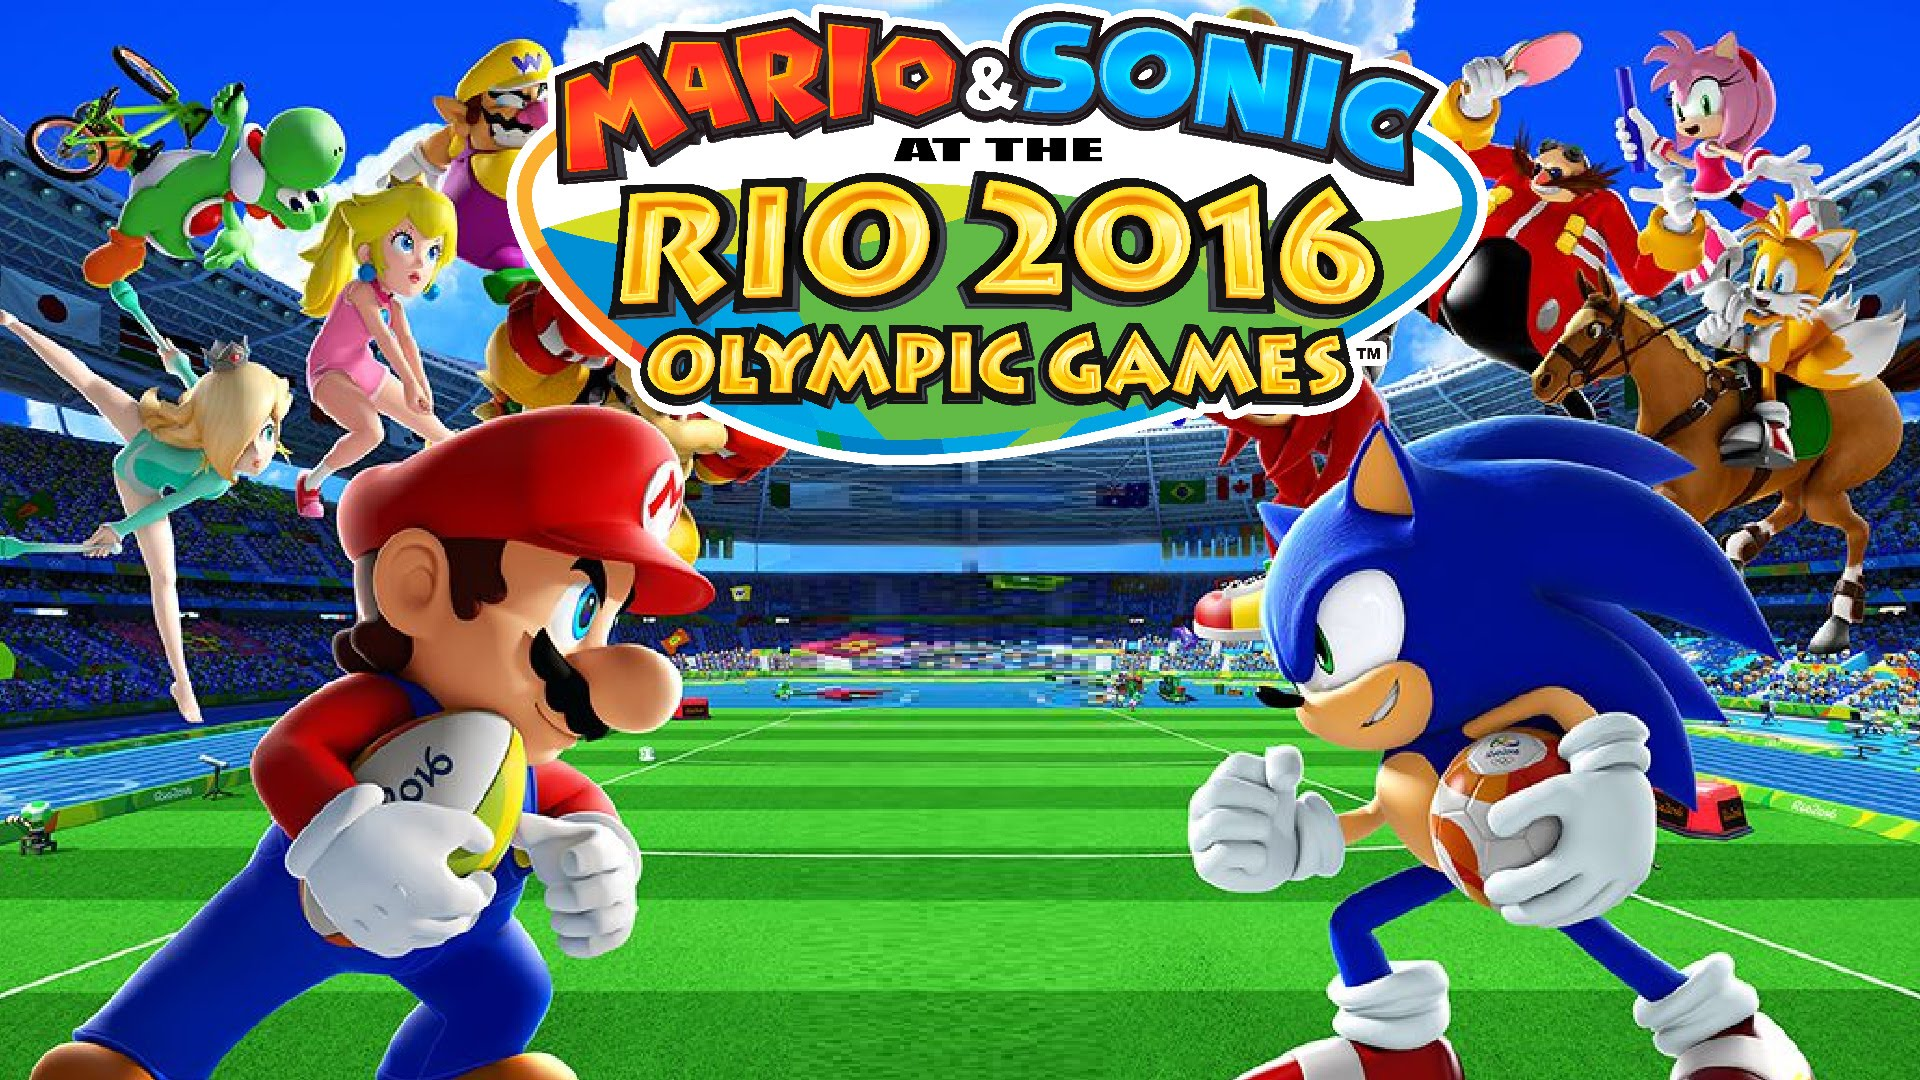 Mario-Sonic-at-the-Rio-Olympic-Games-Review-http-www-sportsgamersonline-com-mario-sonic-r-wallpaper-wp3608276